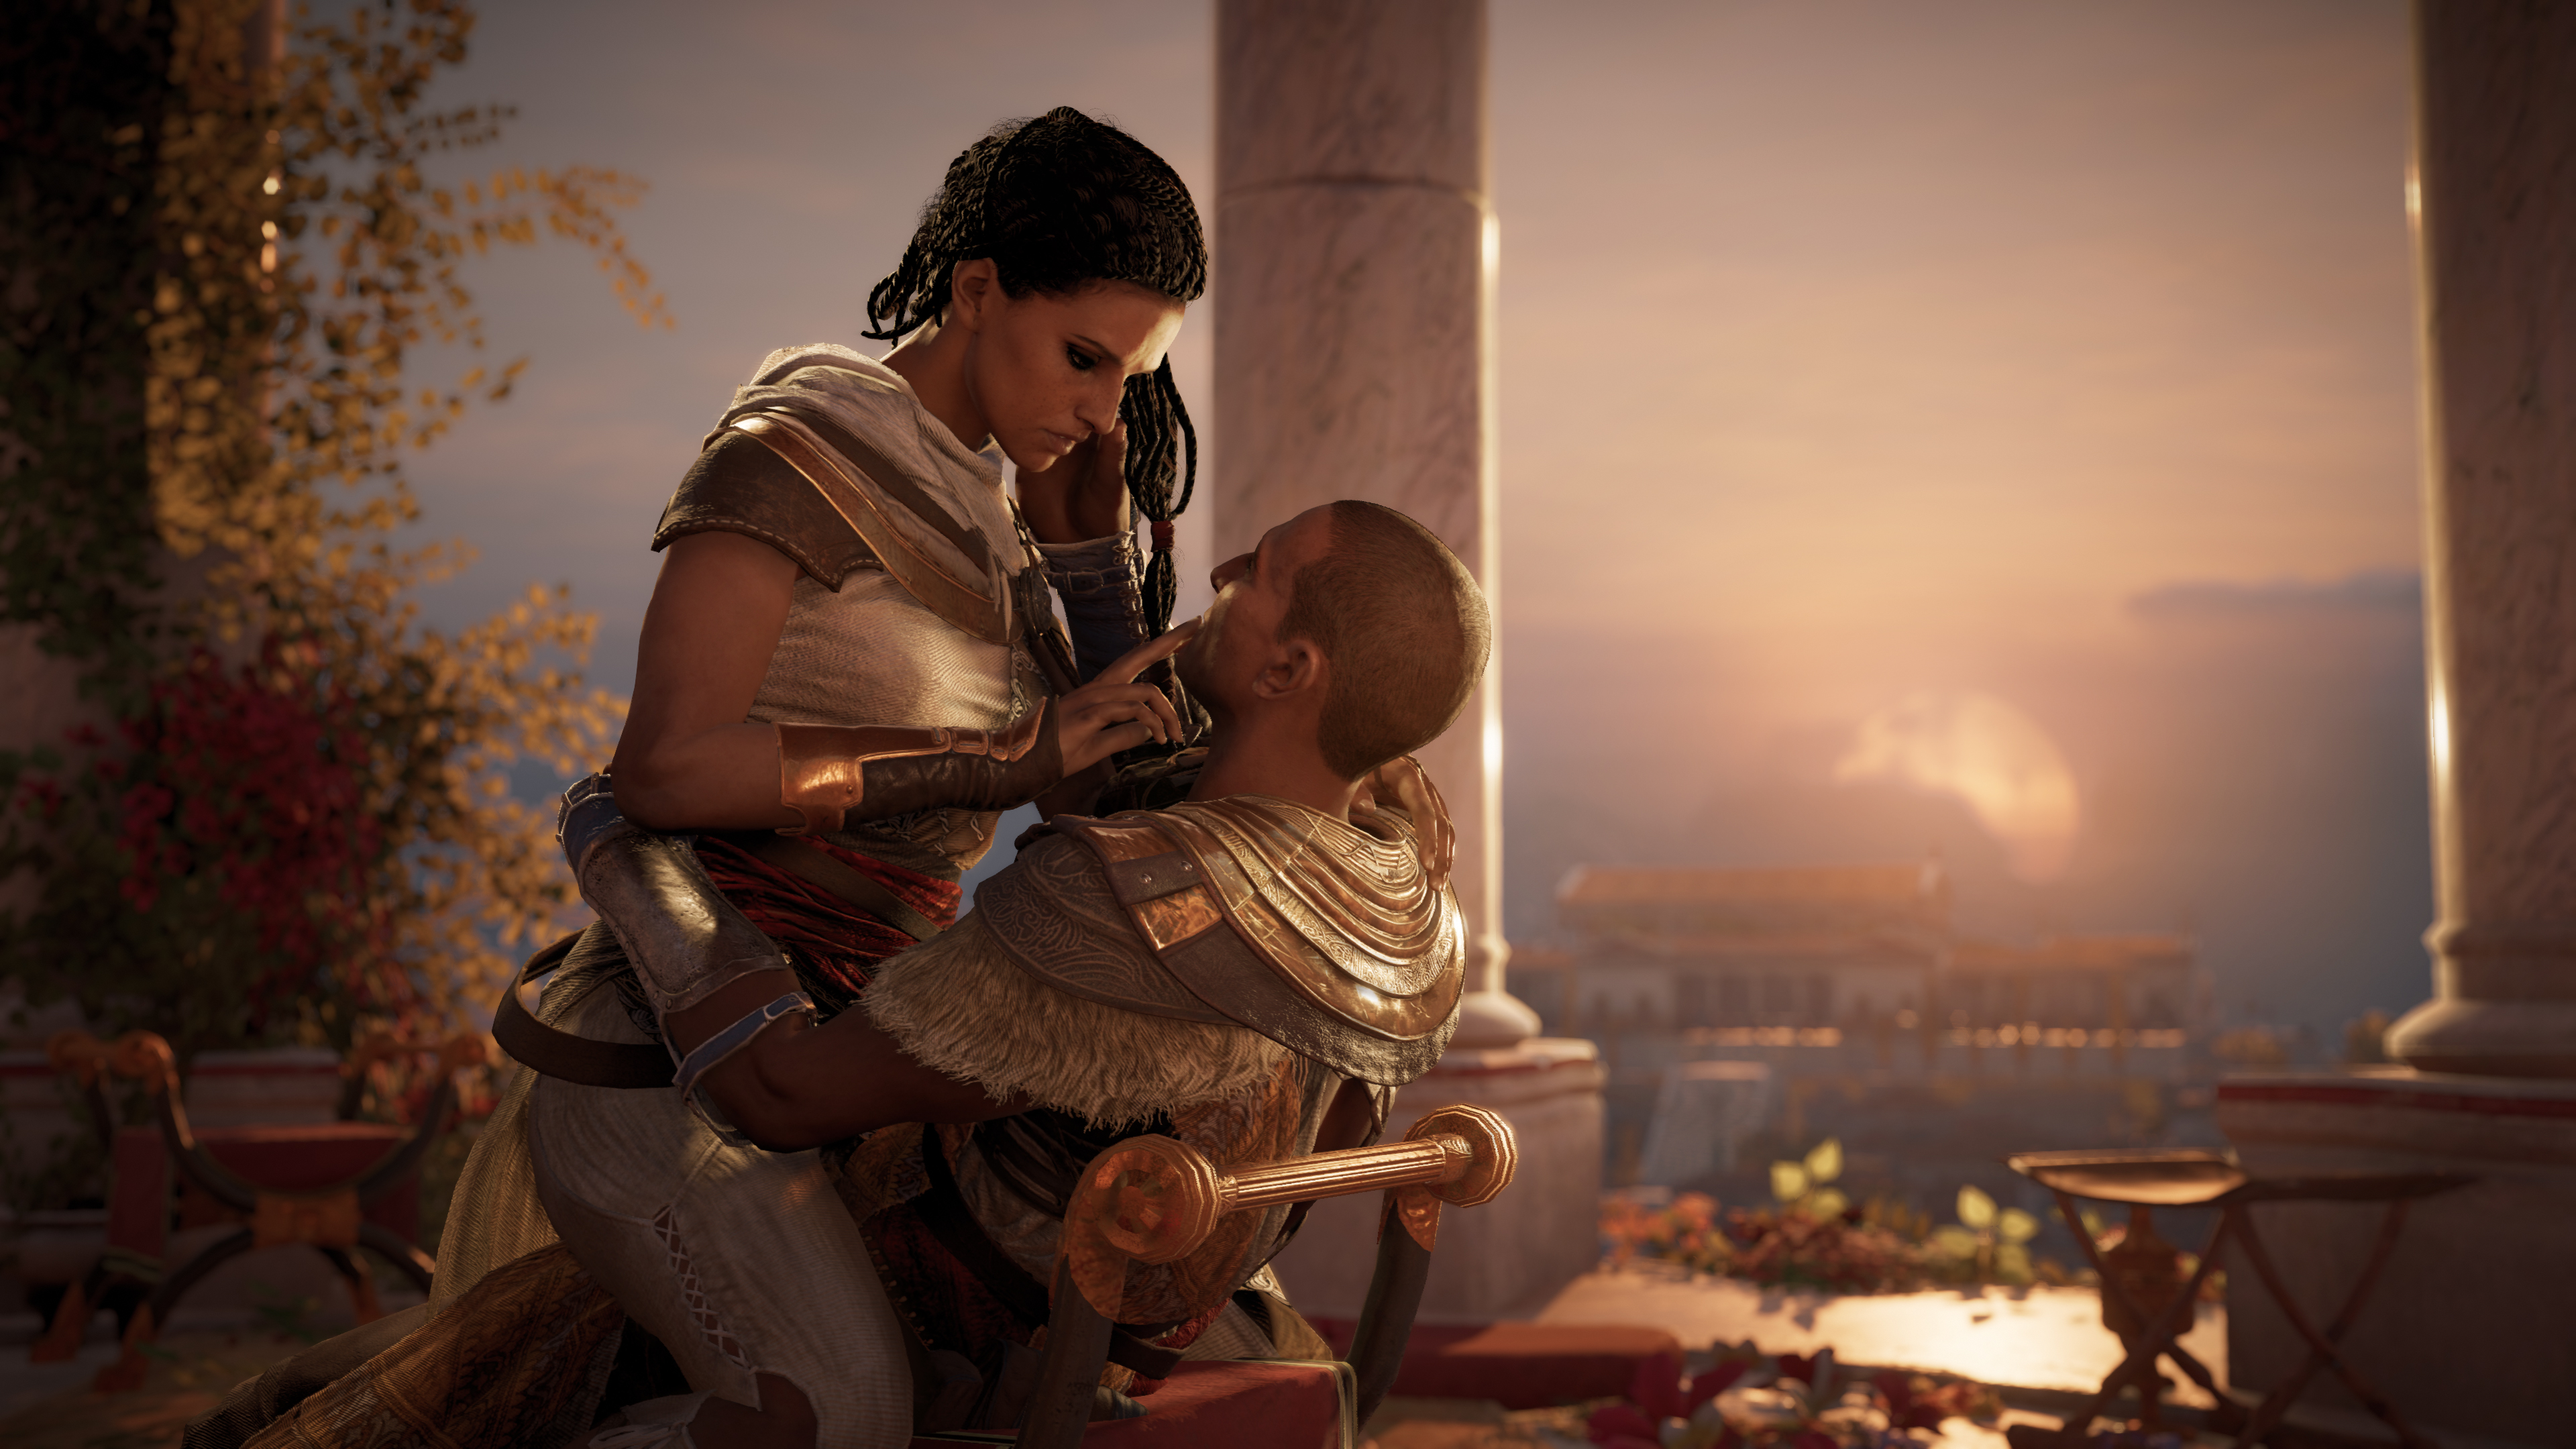 Why A Marriage Is At The Heart Of Assassin S Creed Origins